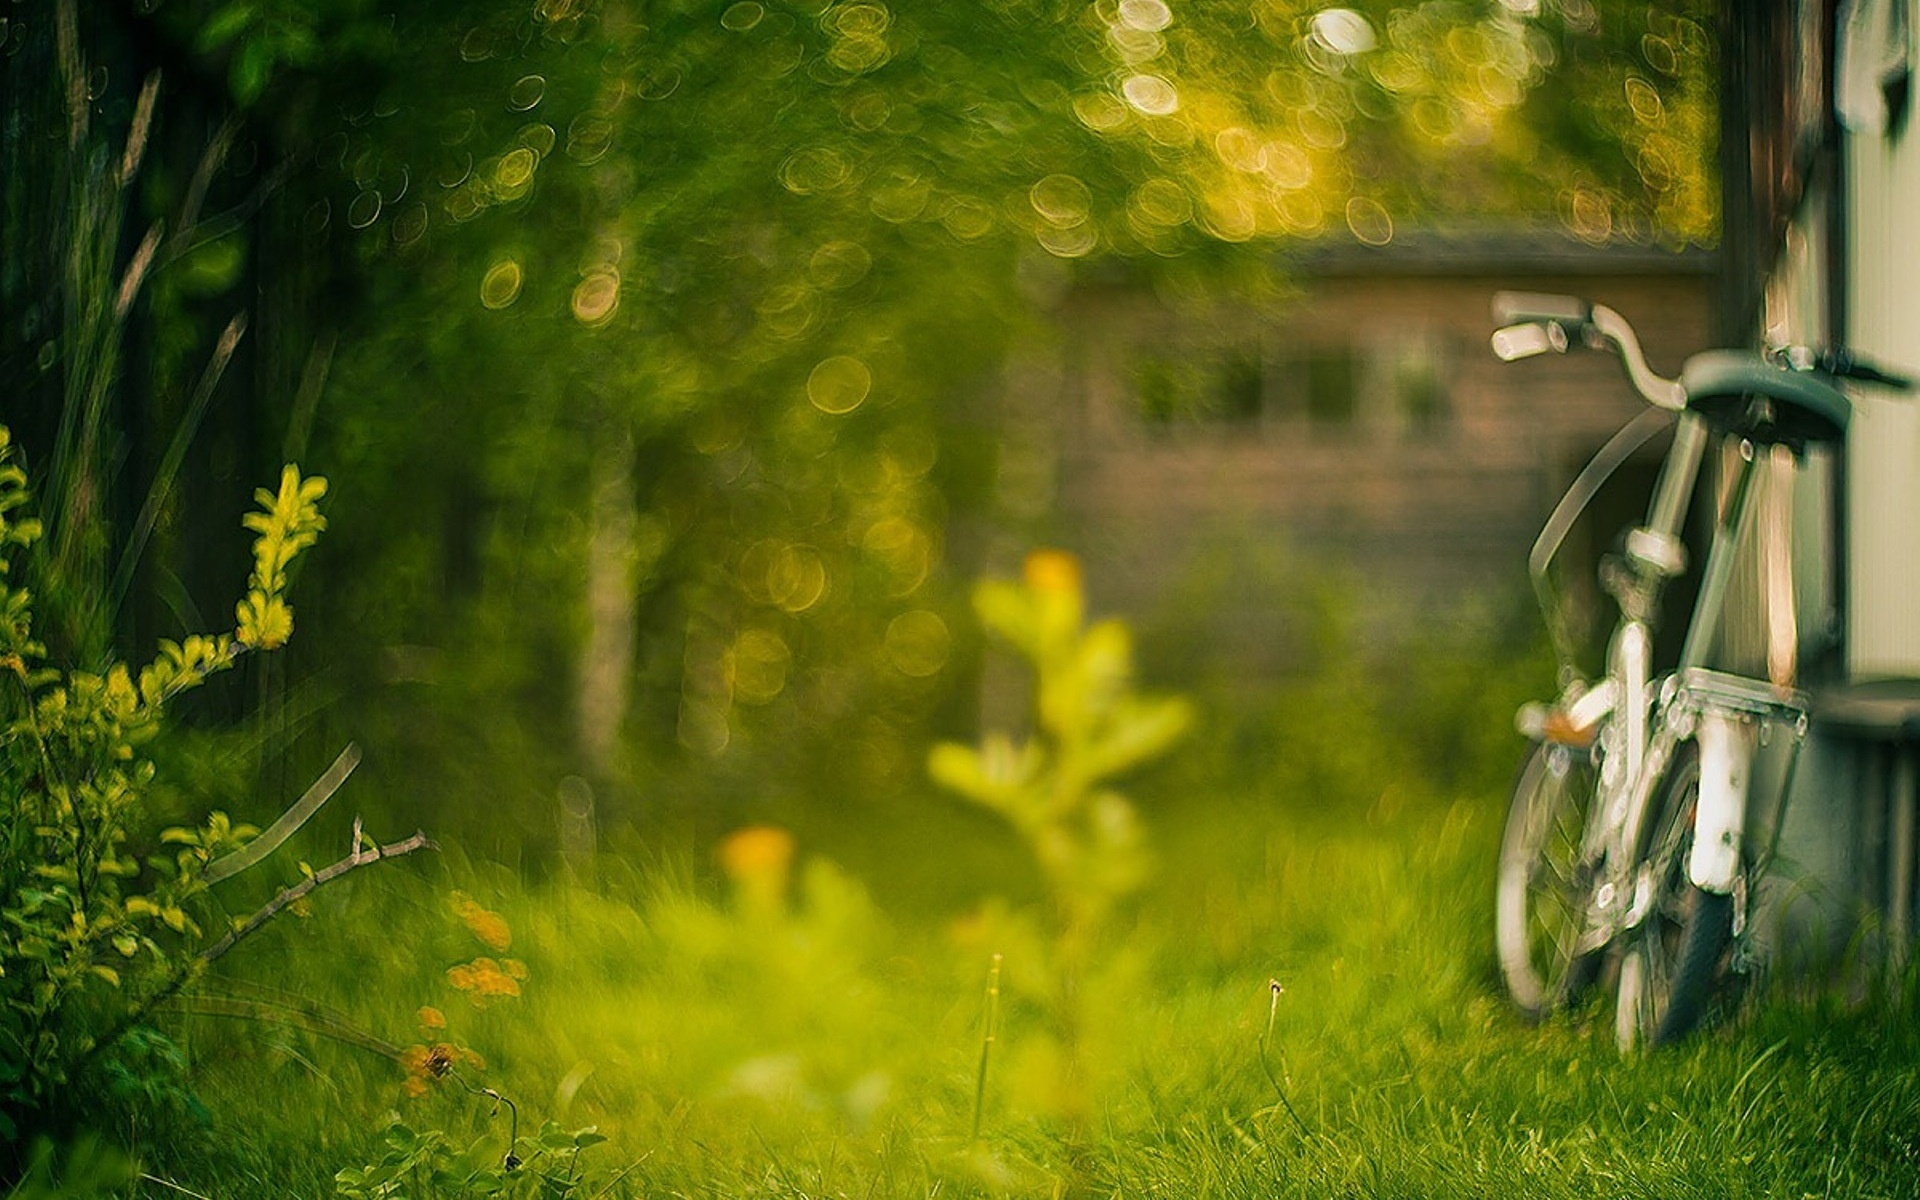 Cute Grass Bokeh Wallpaper